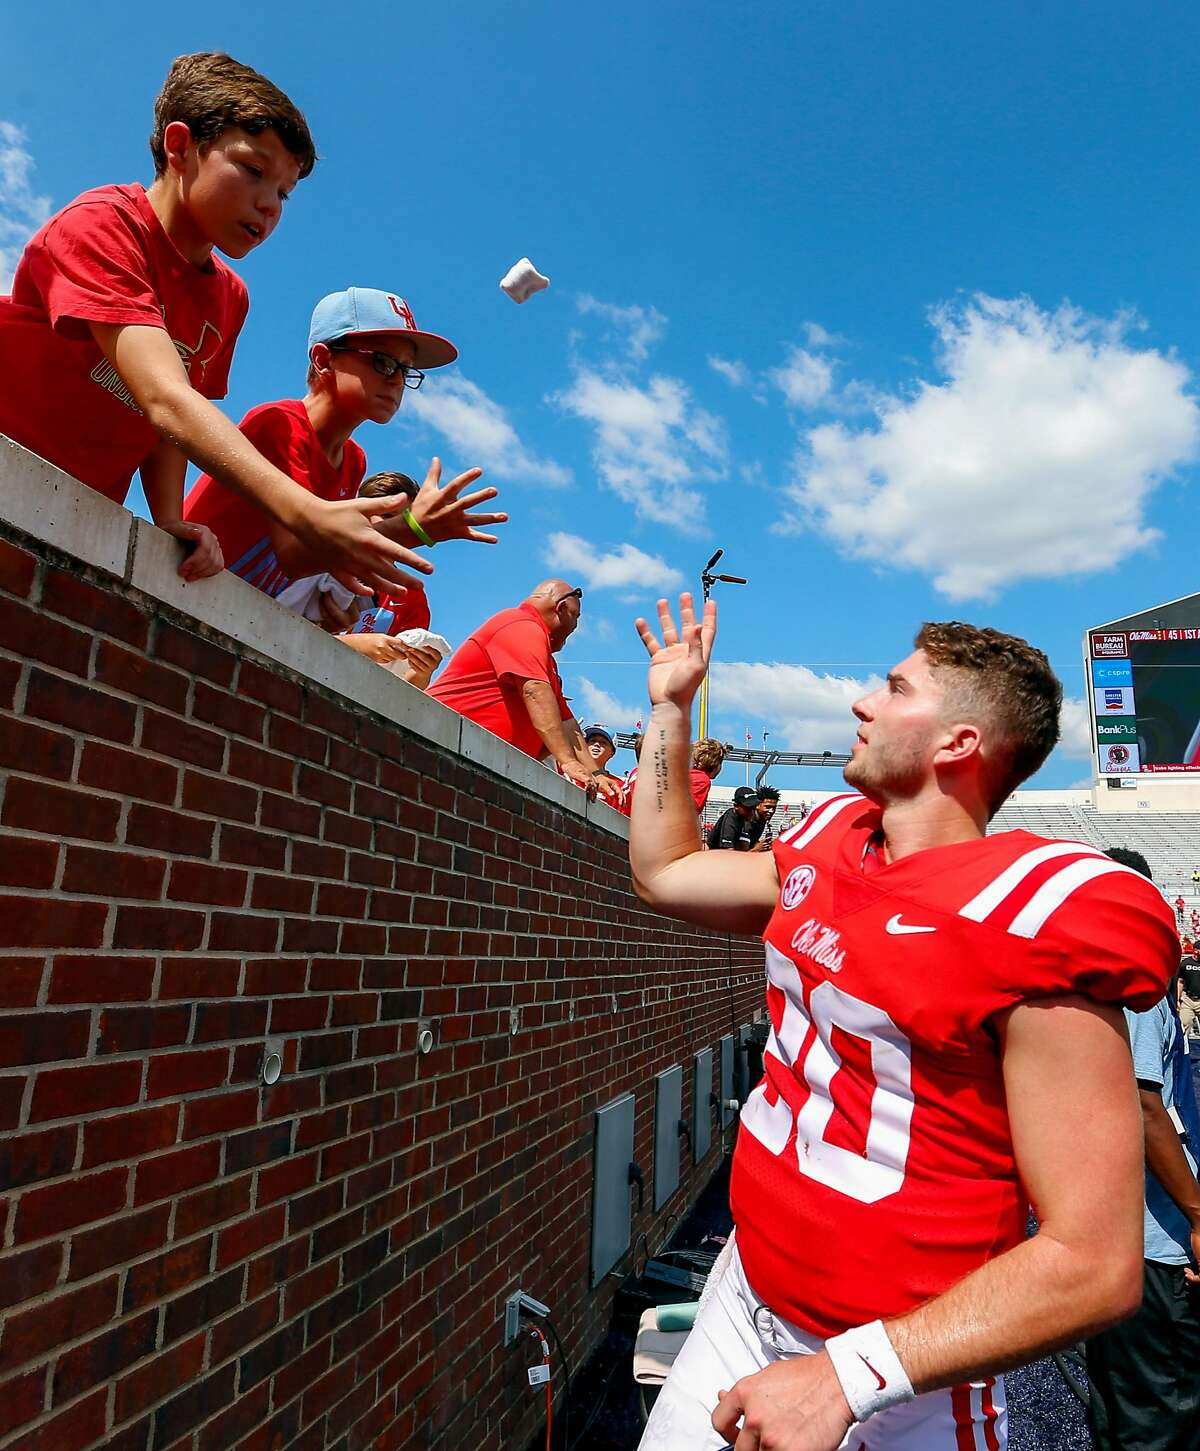 OXFORD, MS - SEPTEMBER 9: Quarterback Shea Patterson #20 of the Mississippi Rebels tosses his armbands to some fans after they defeated the Tennessee Martin Skyhawks 45-23 in an NCAA football game at Vaught-Hemingway Stadium on September 9, 2017 in OXFORD, Mississippi. (Photo by Butch Dill/Getty Images)